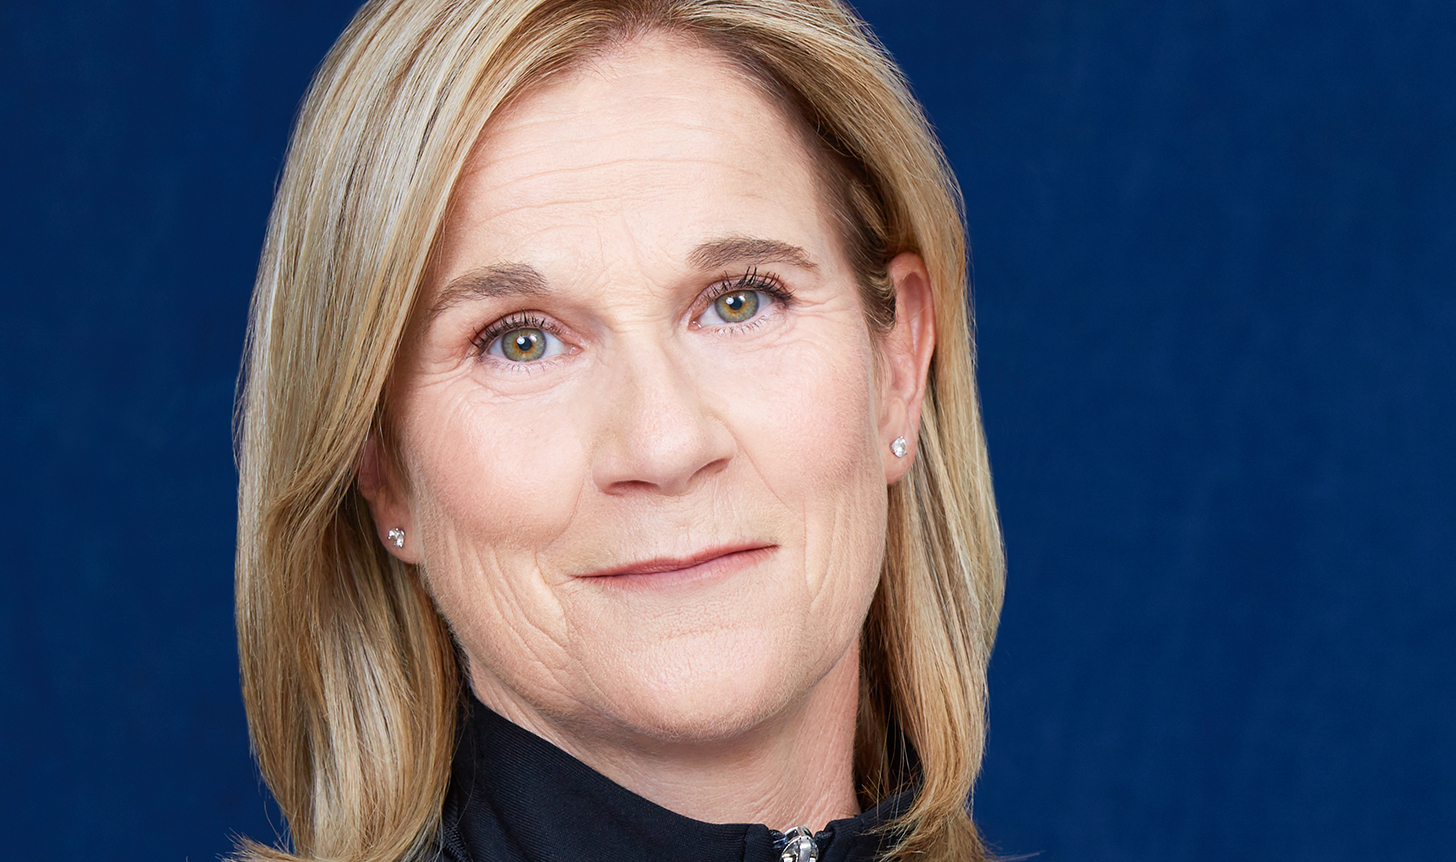 jill-ellis-headshot-crop.jpg